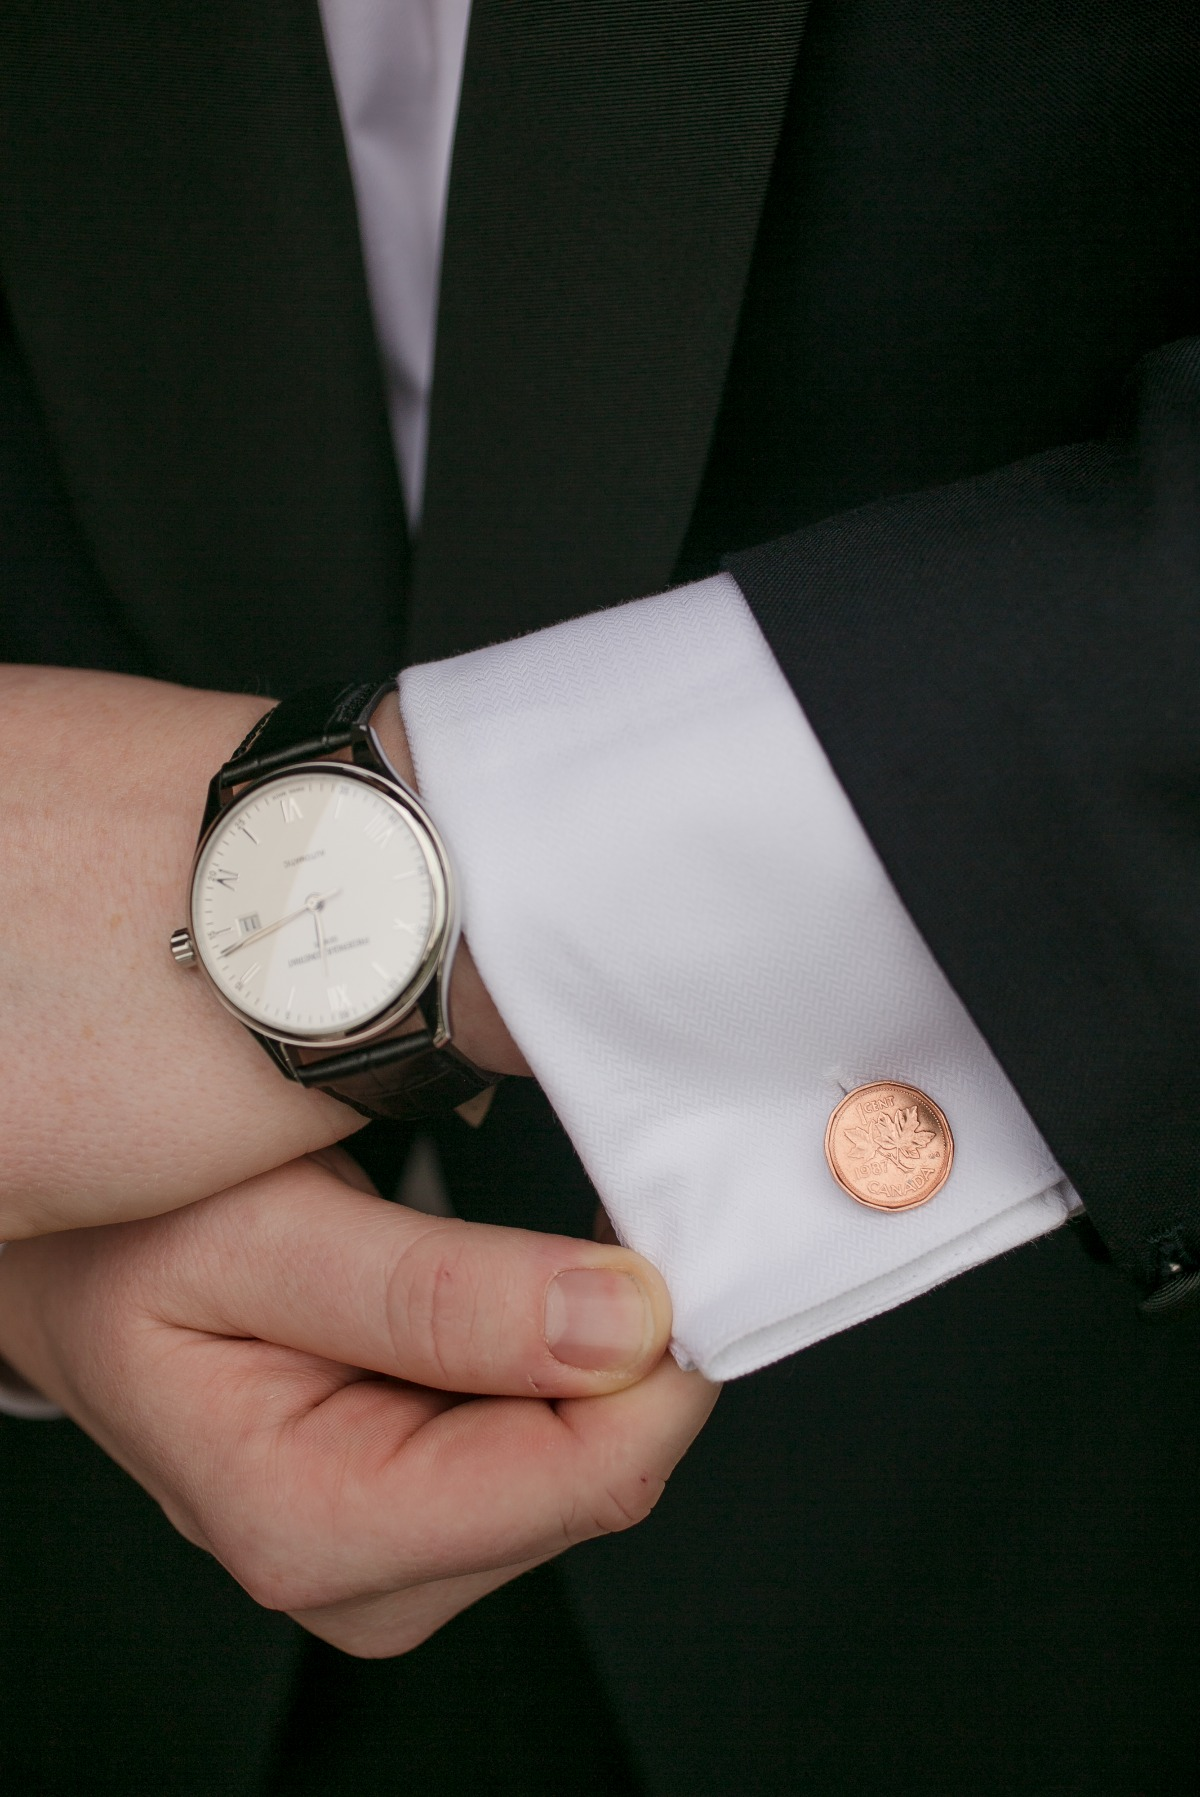 copper penny cufflinks